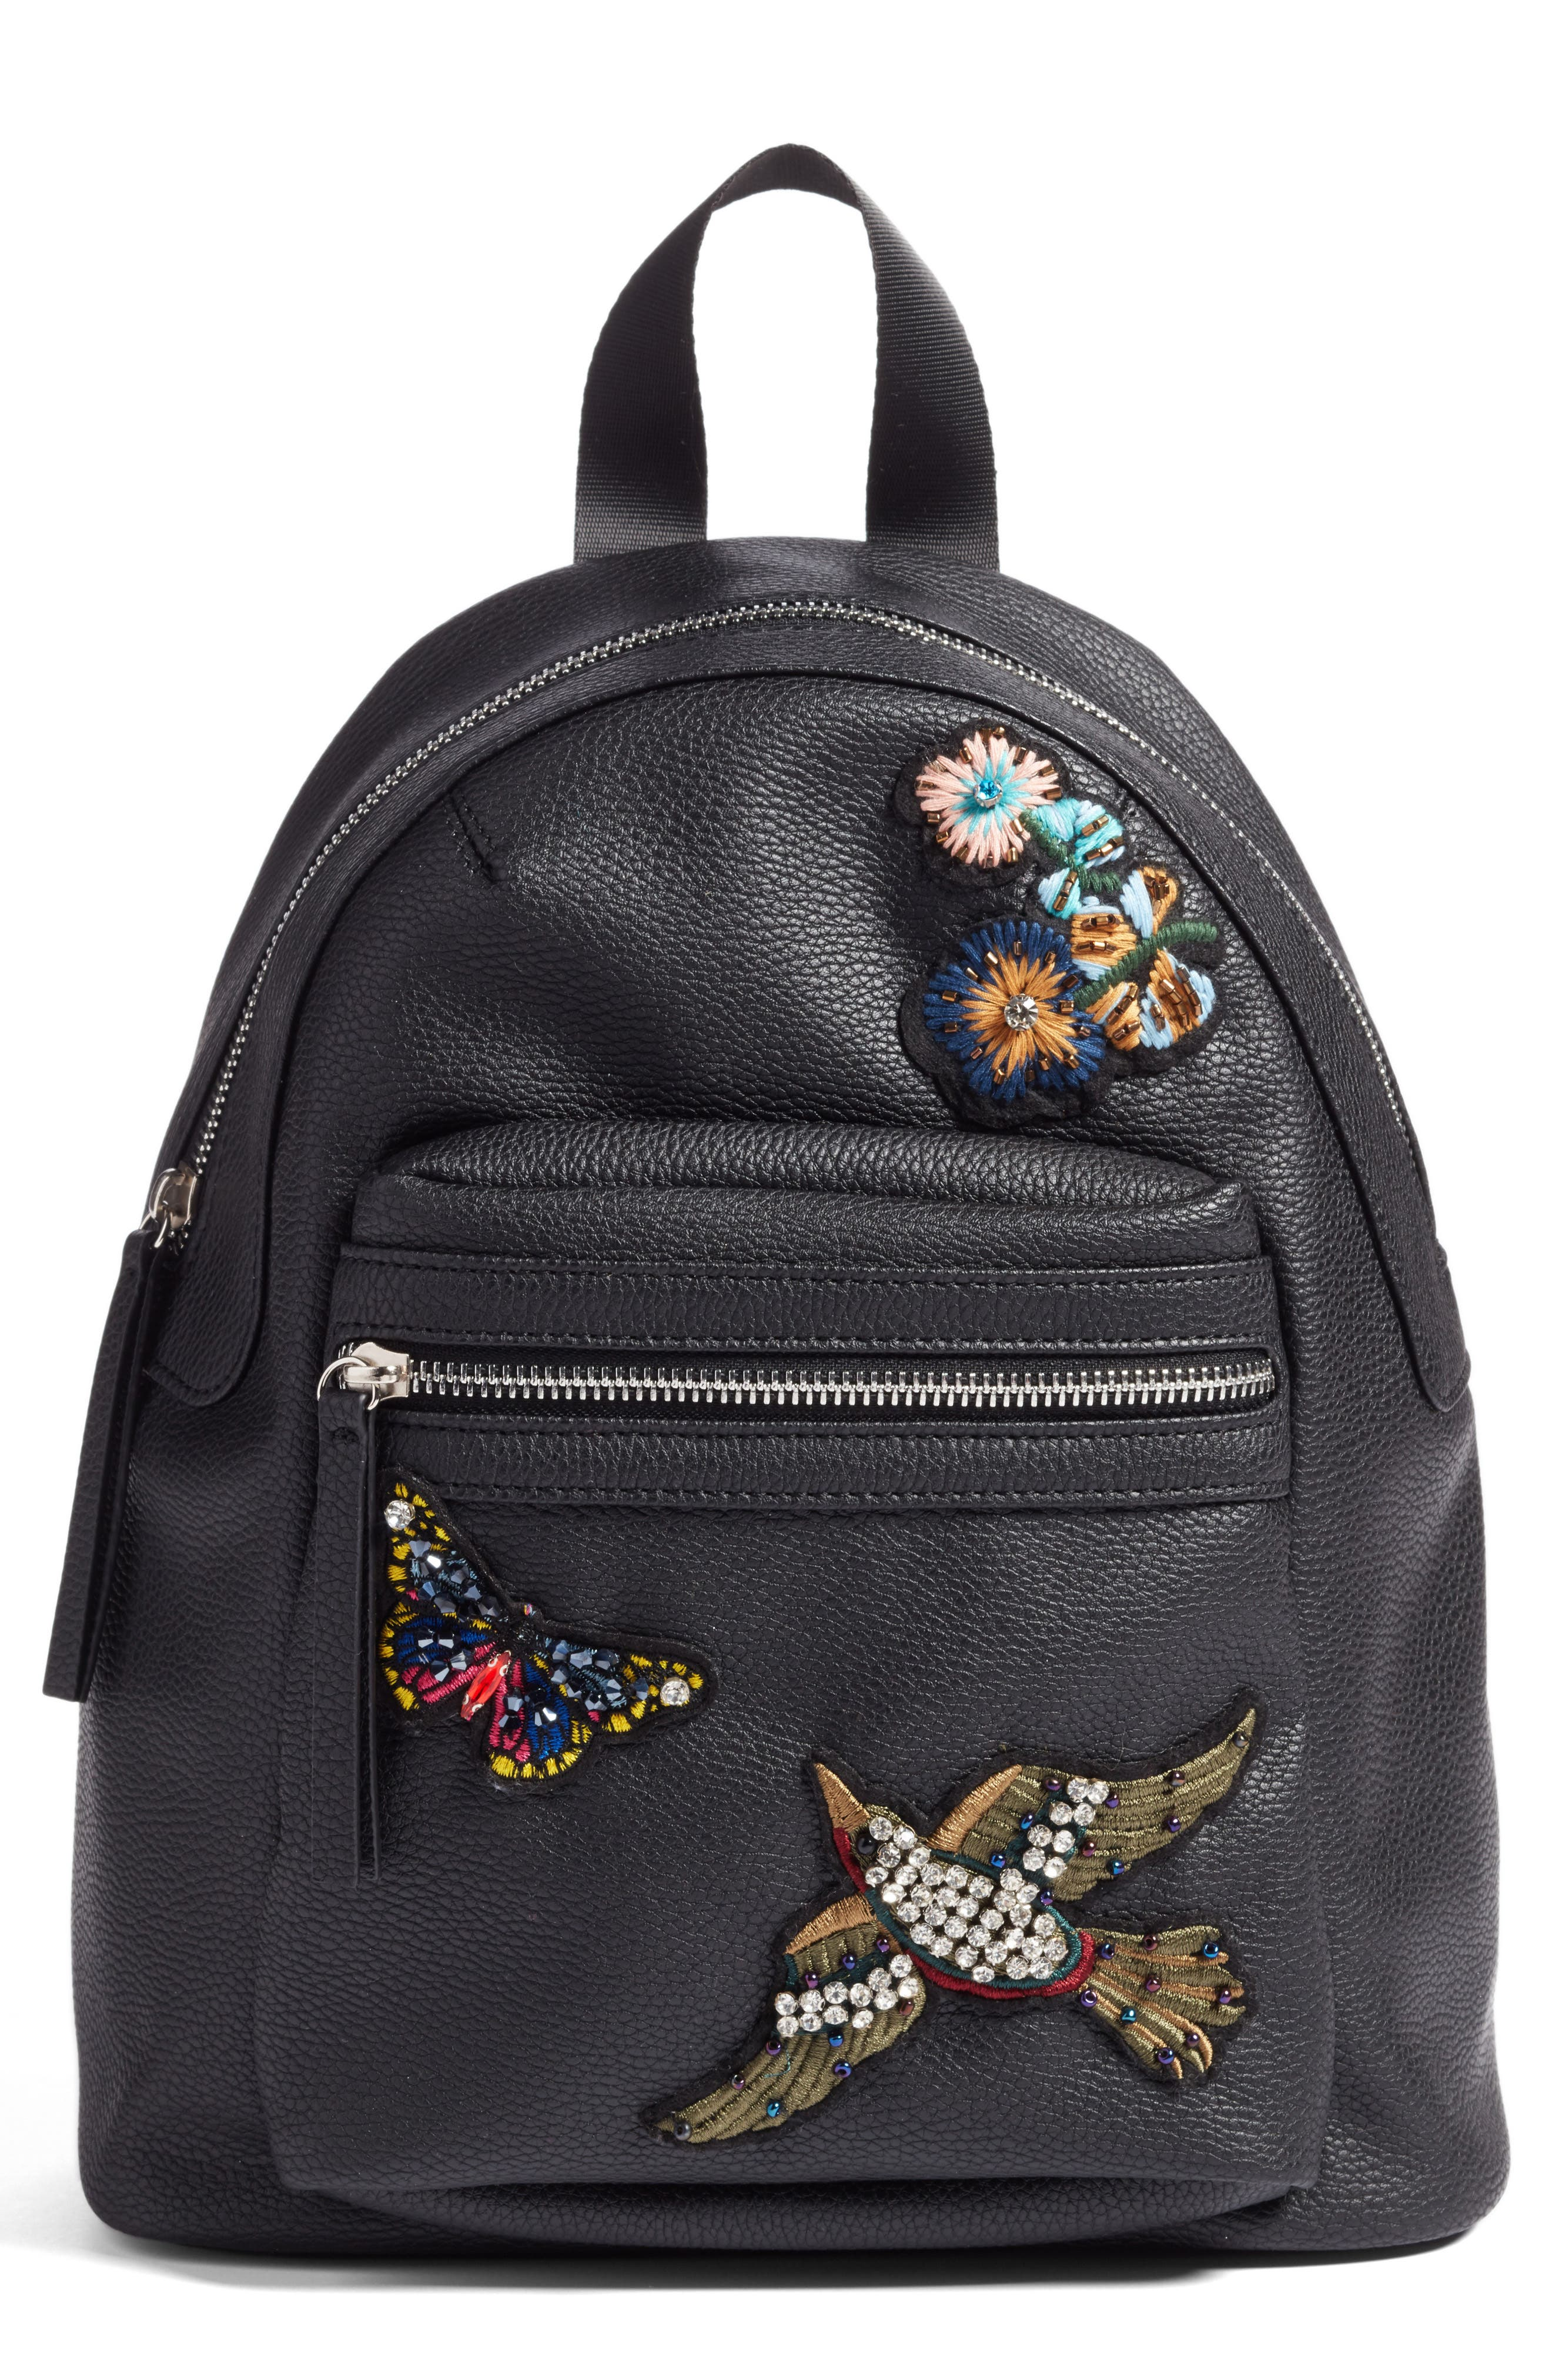 Hannah Banana Faux Leather Jewel Patch Backpack